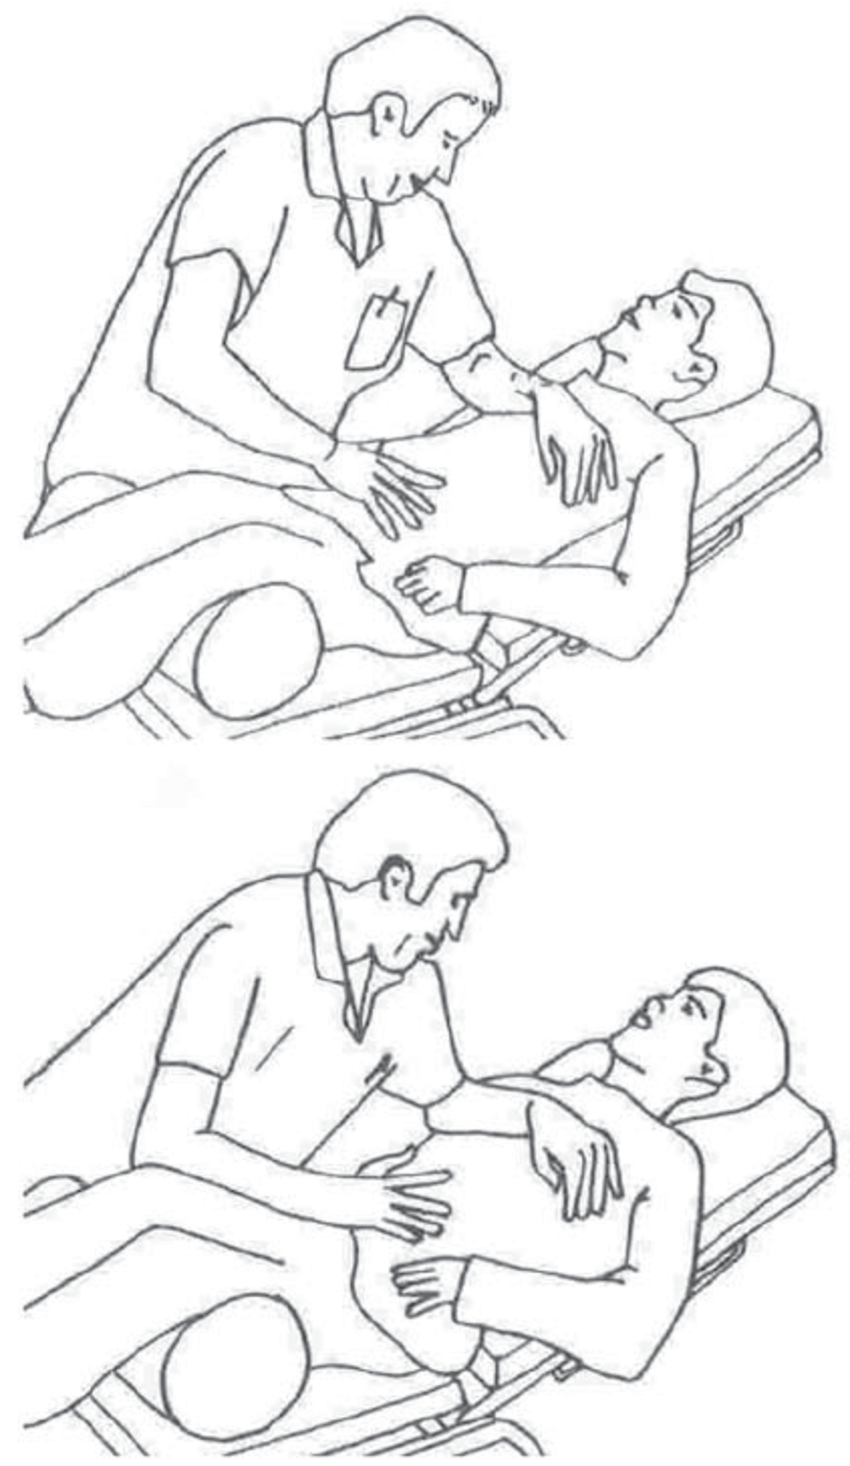 Manually assisted cough via thoracic compression